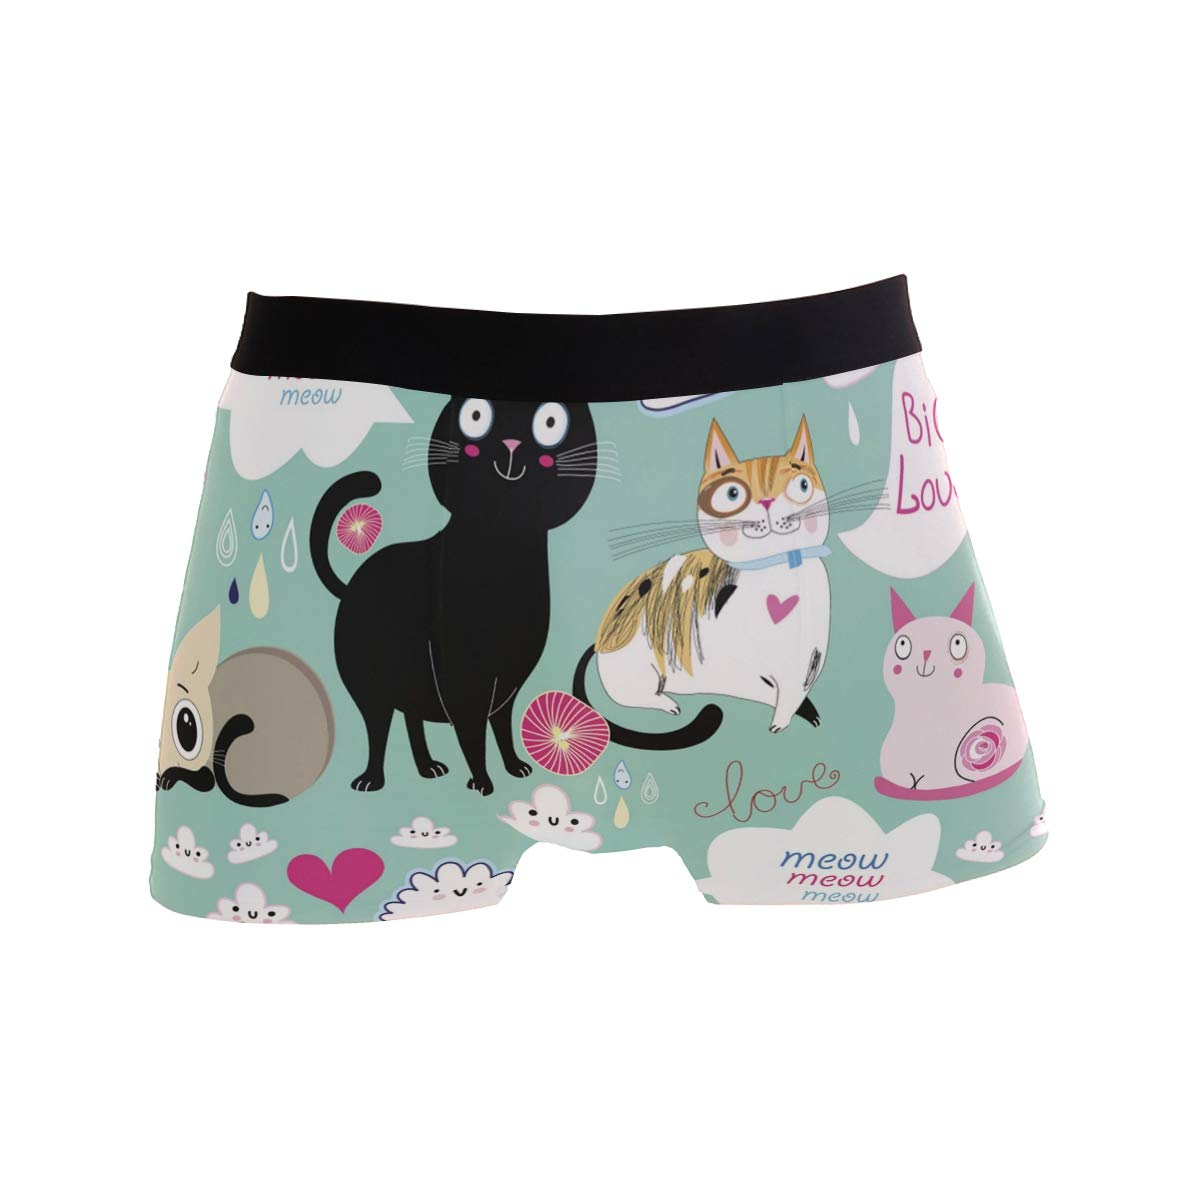 Cartoon Hipster Cat Kitten Love Heart Boxer Briefs Mens Underwear Pack Seamless Comfort Soft